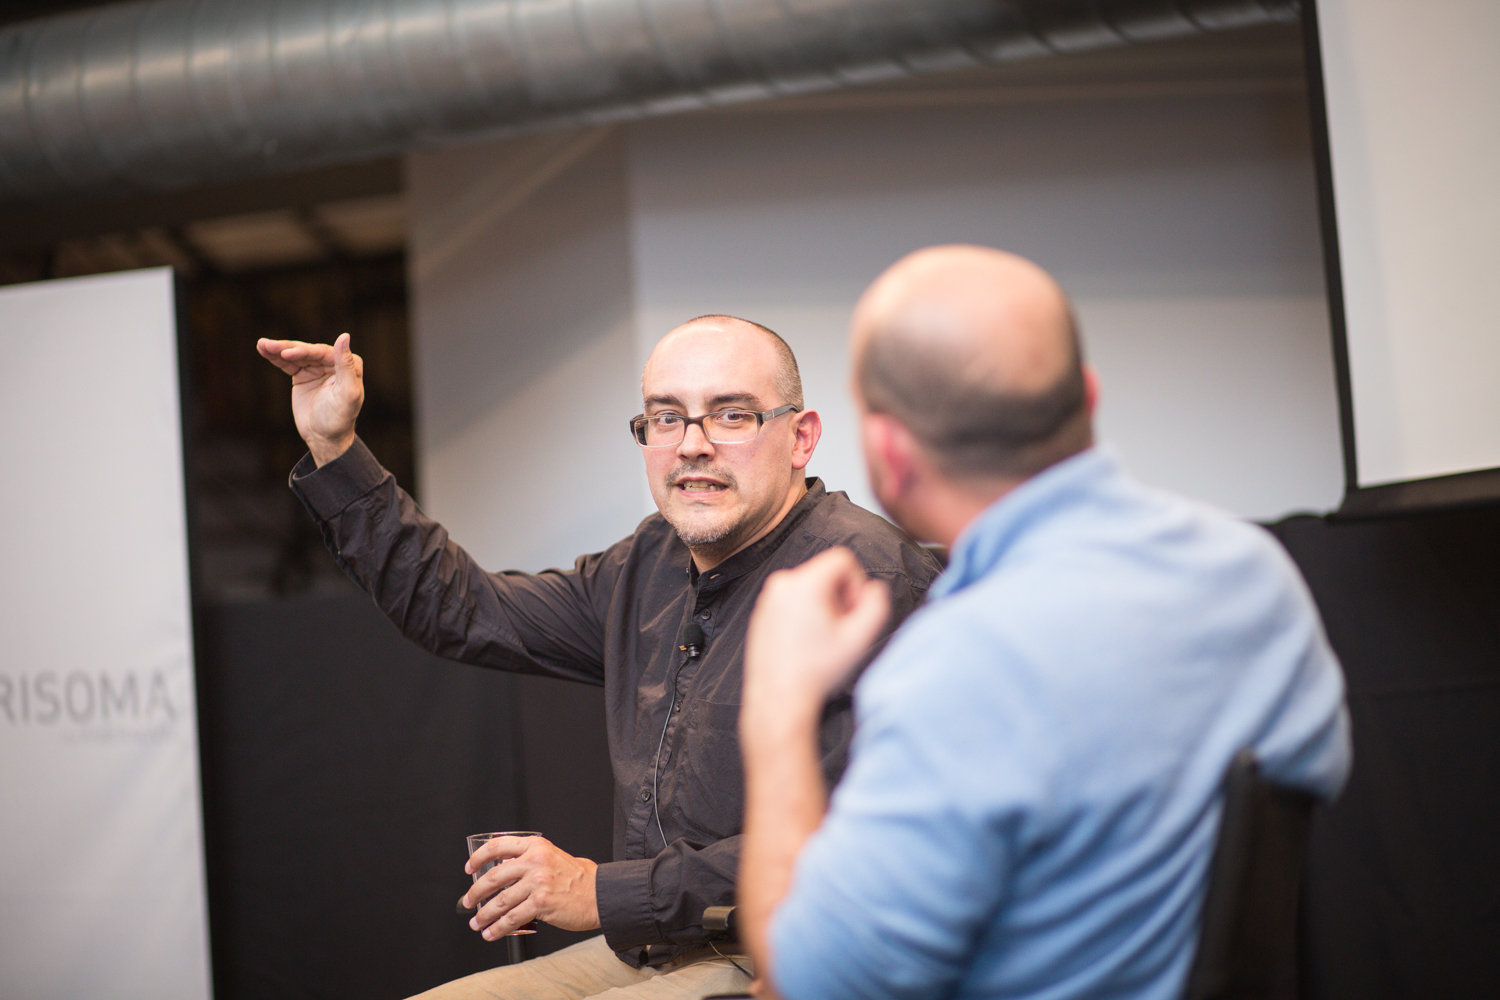 500 Startups Founder Dave McClure Discusses Entrepreneurship with Beri Meric, IVY CEO